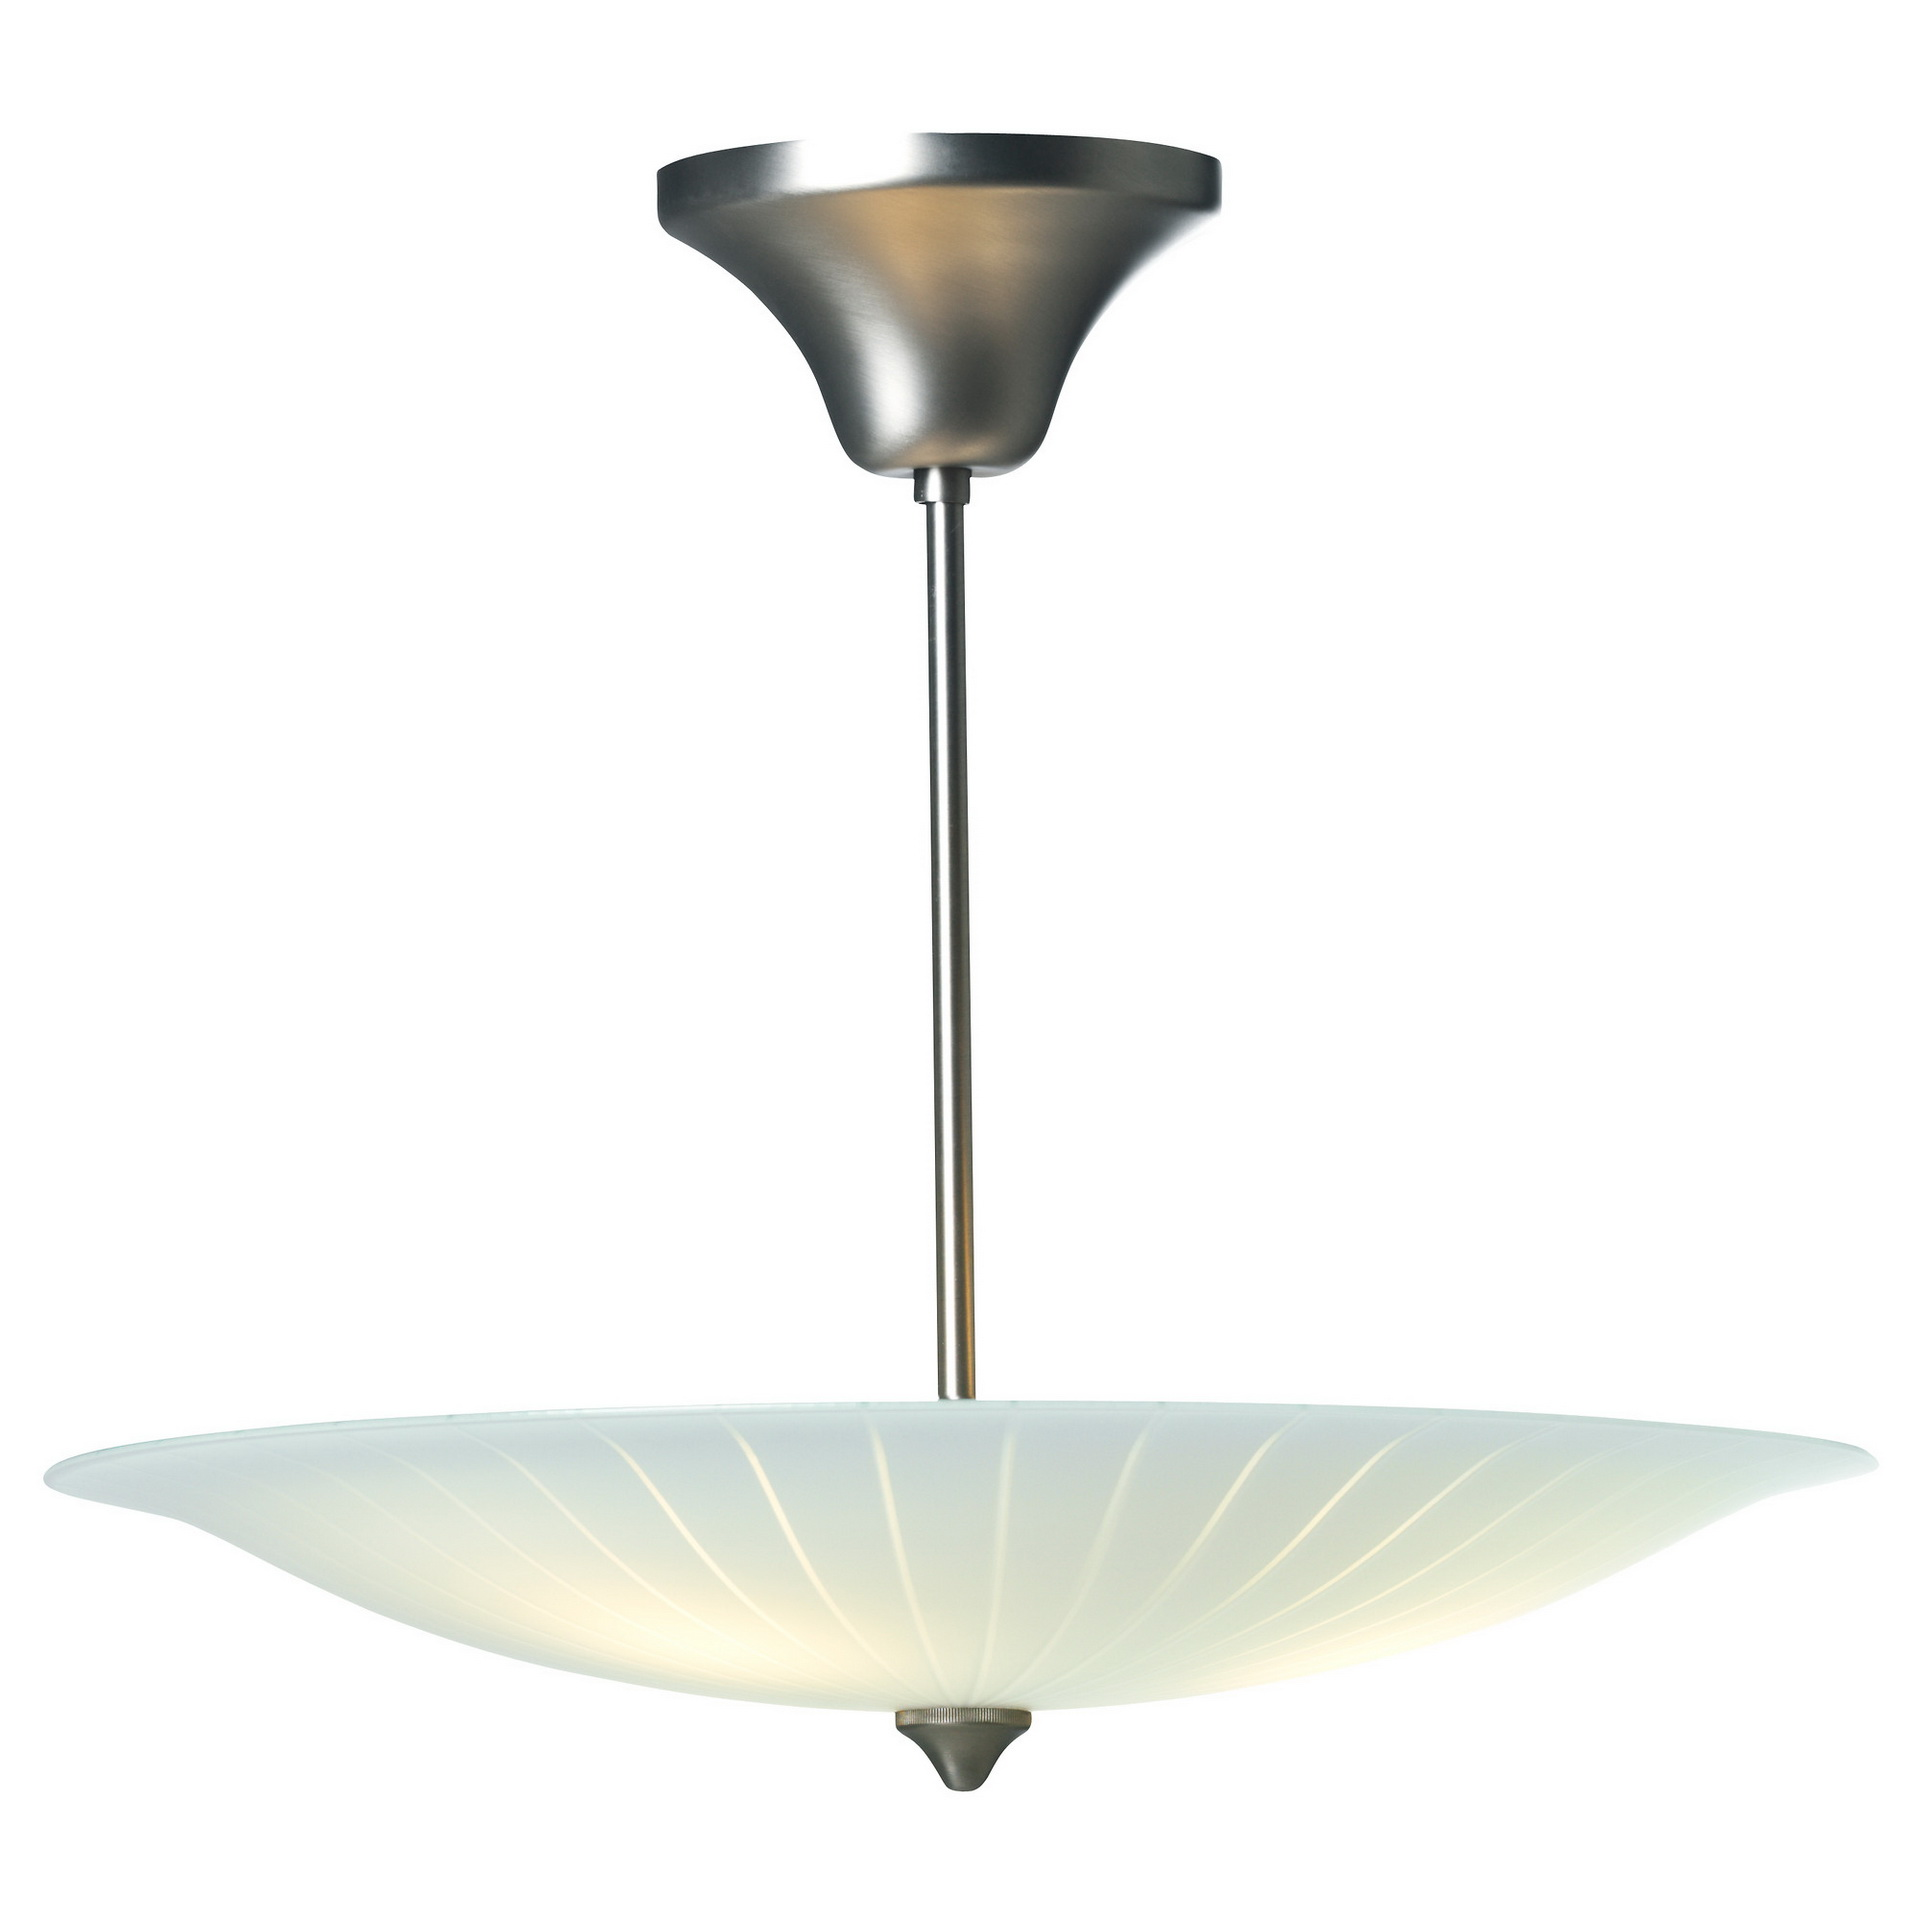 TOP 10 Ceiling lamps and fans of 2018 | Warisan Lighting for Roof Lamp Design  181obs